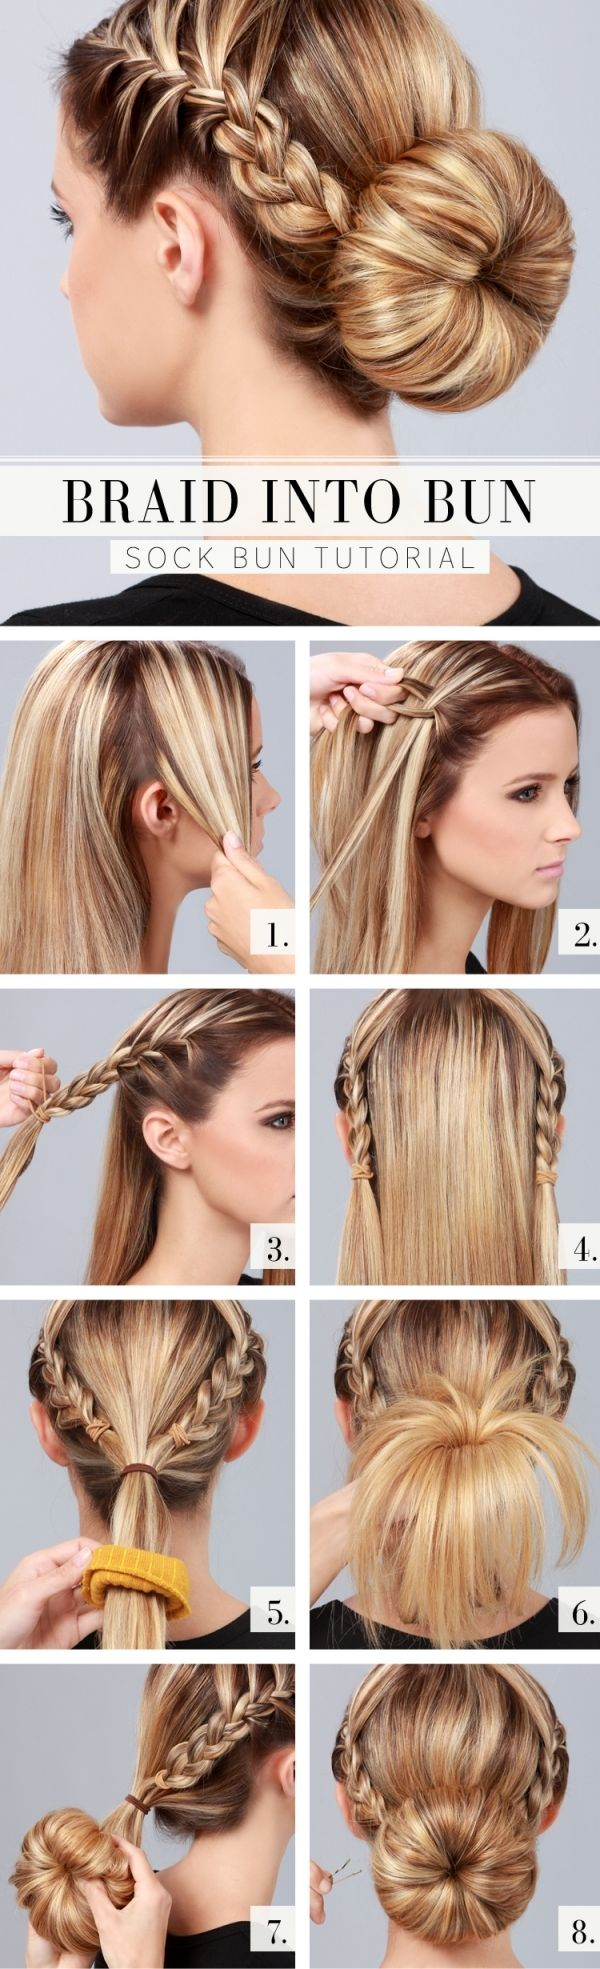 538 best hairstyles of the fine thin images on pinterest braid 538 best hairstyles of the fine thin images on pinterest braid braided hairstyle and cute hairstyles solutioingenieria Choice Image